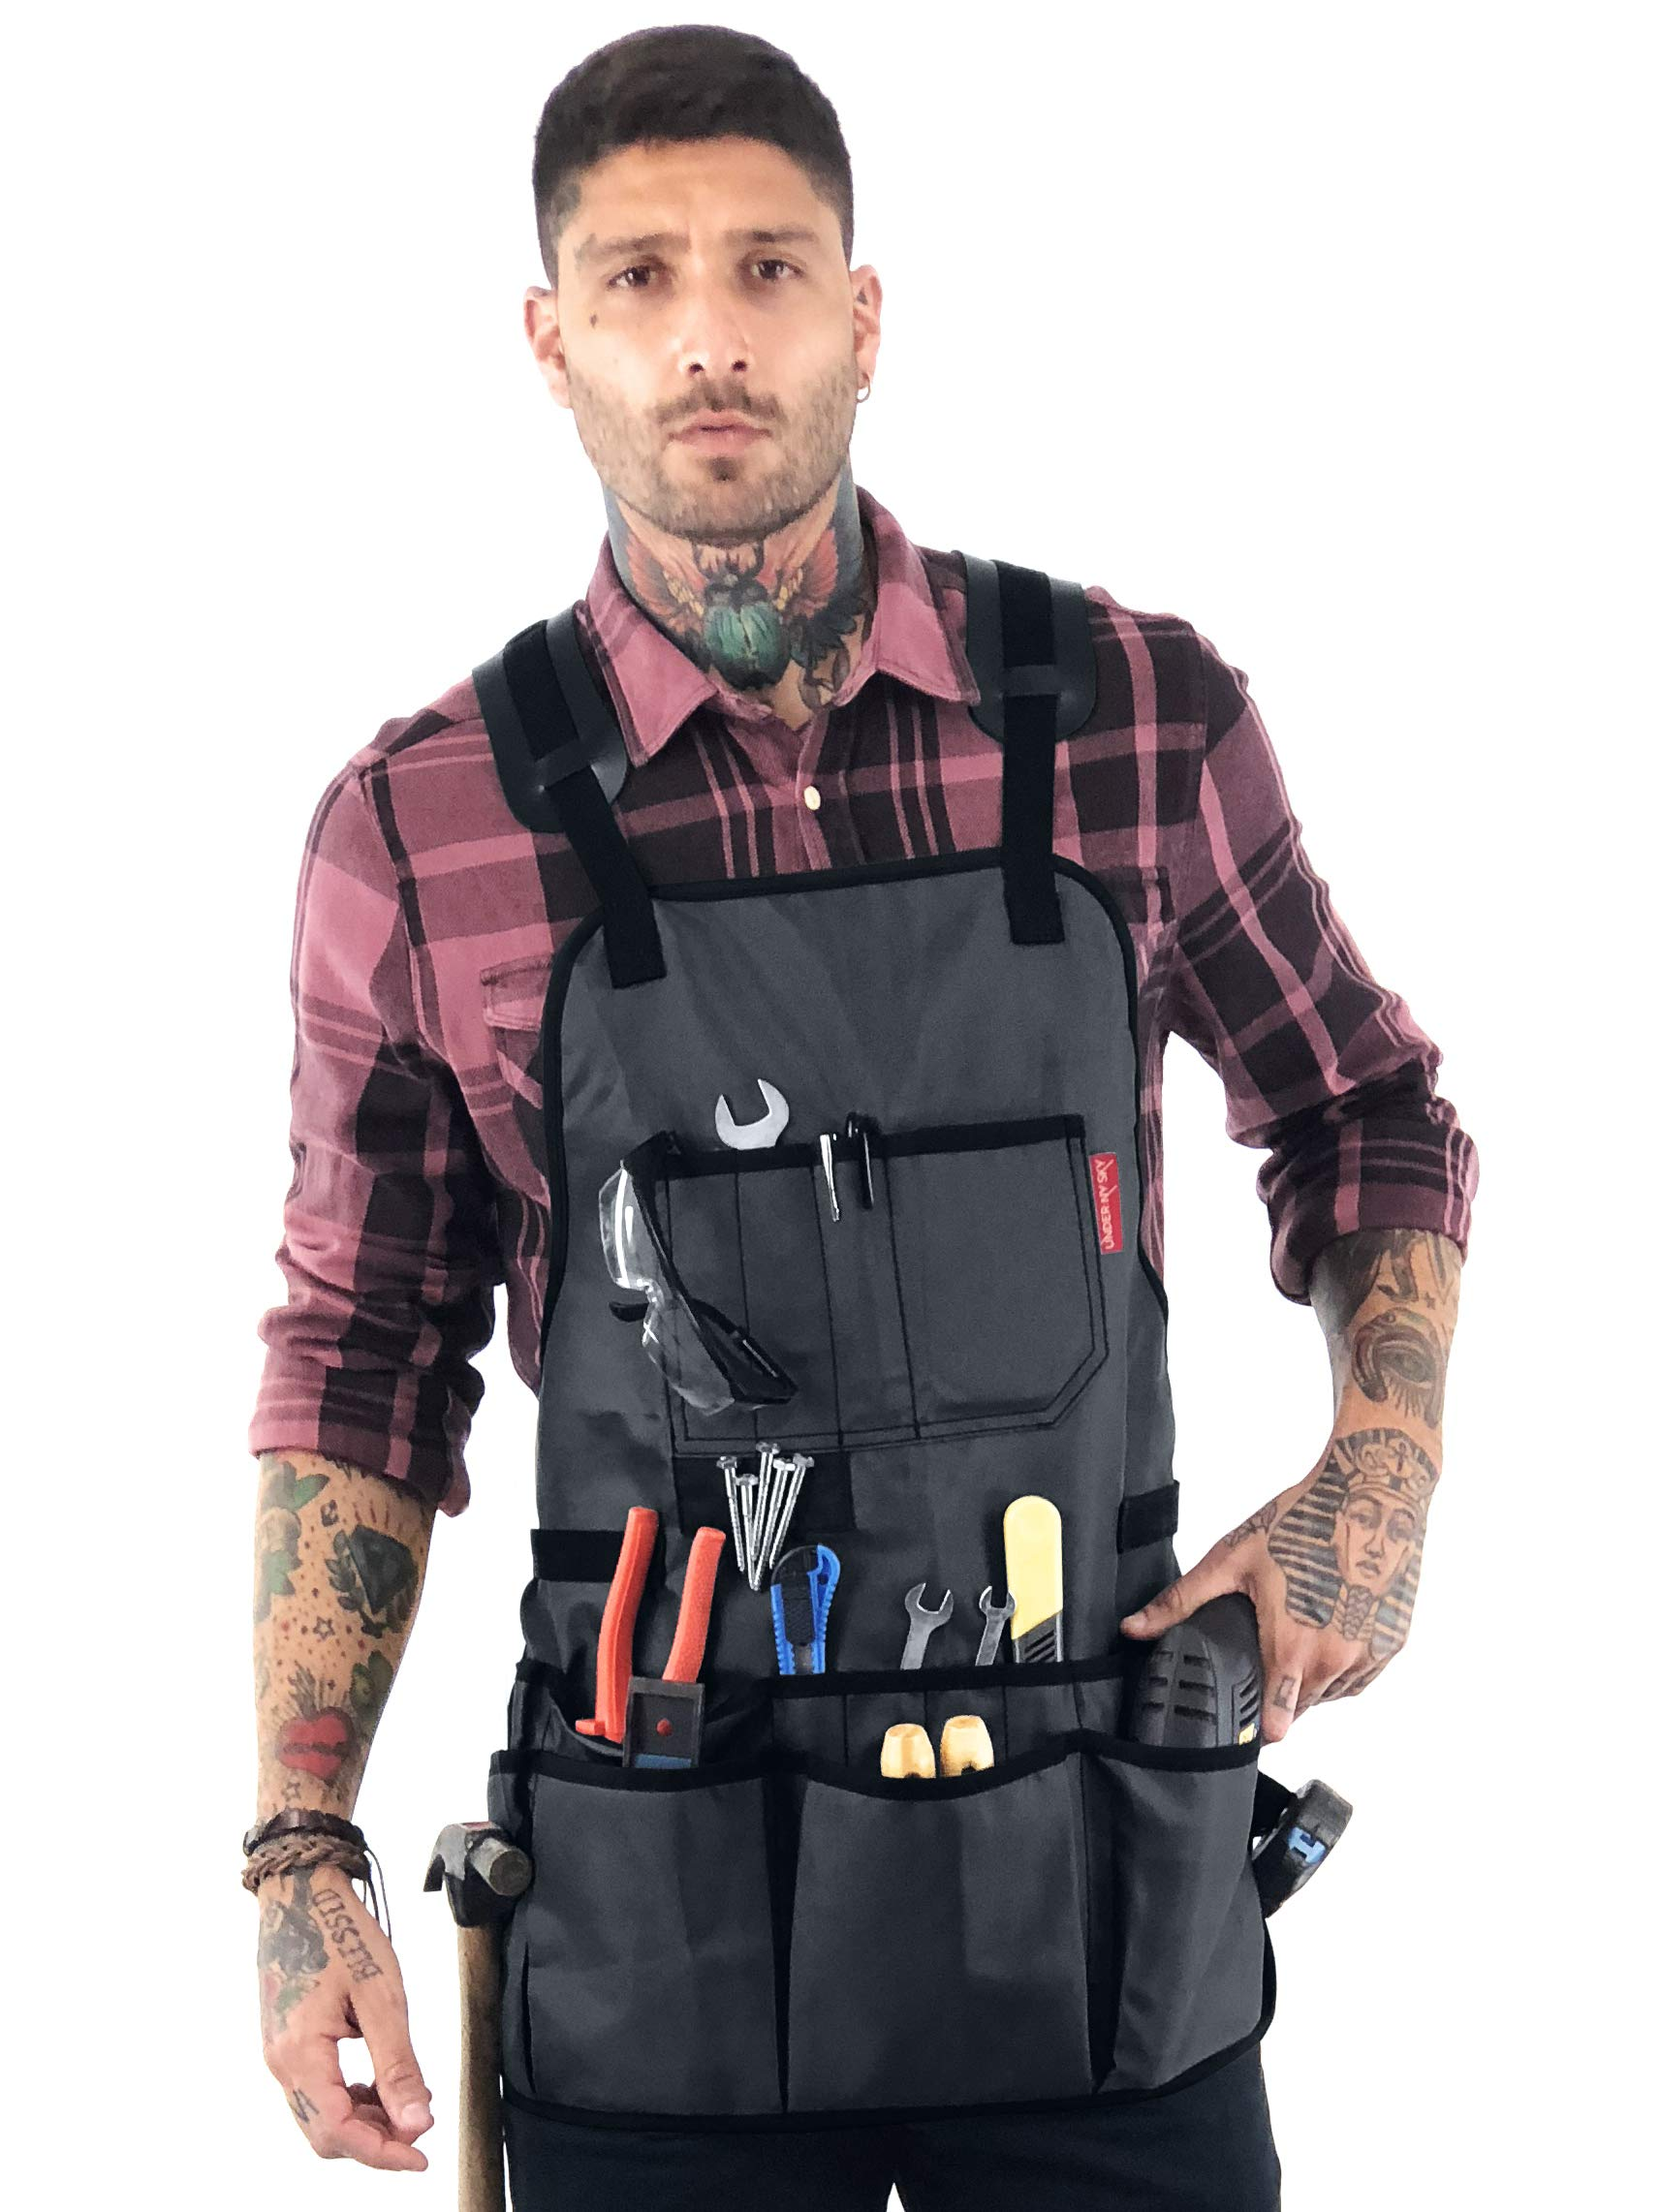 Under NY Sky Tool Apron - Magnetic Tool Holder - Heavy Duty Gray Oxford Canvas - Cross-Back - 18 Pockets - Adjustable for Men, Women - Pro Mechanic, Woodworker, Carpenter, Electrician, Gardener Apron by Under NY Sky